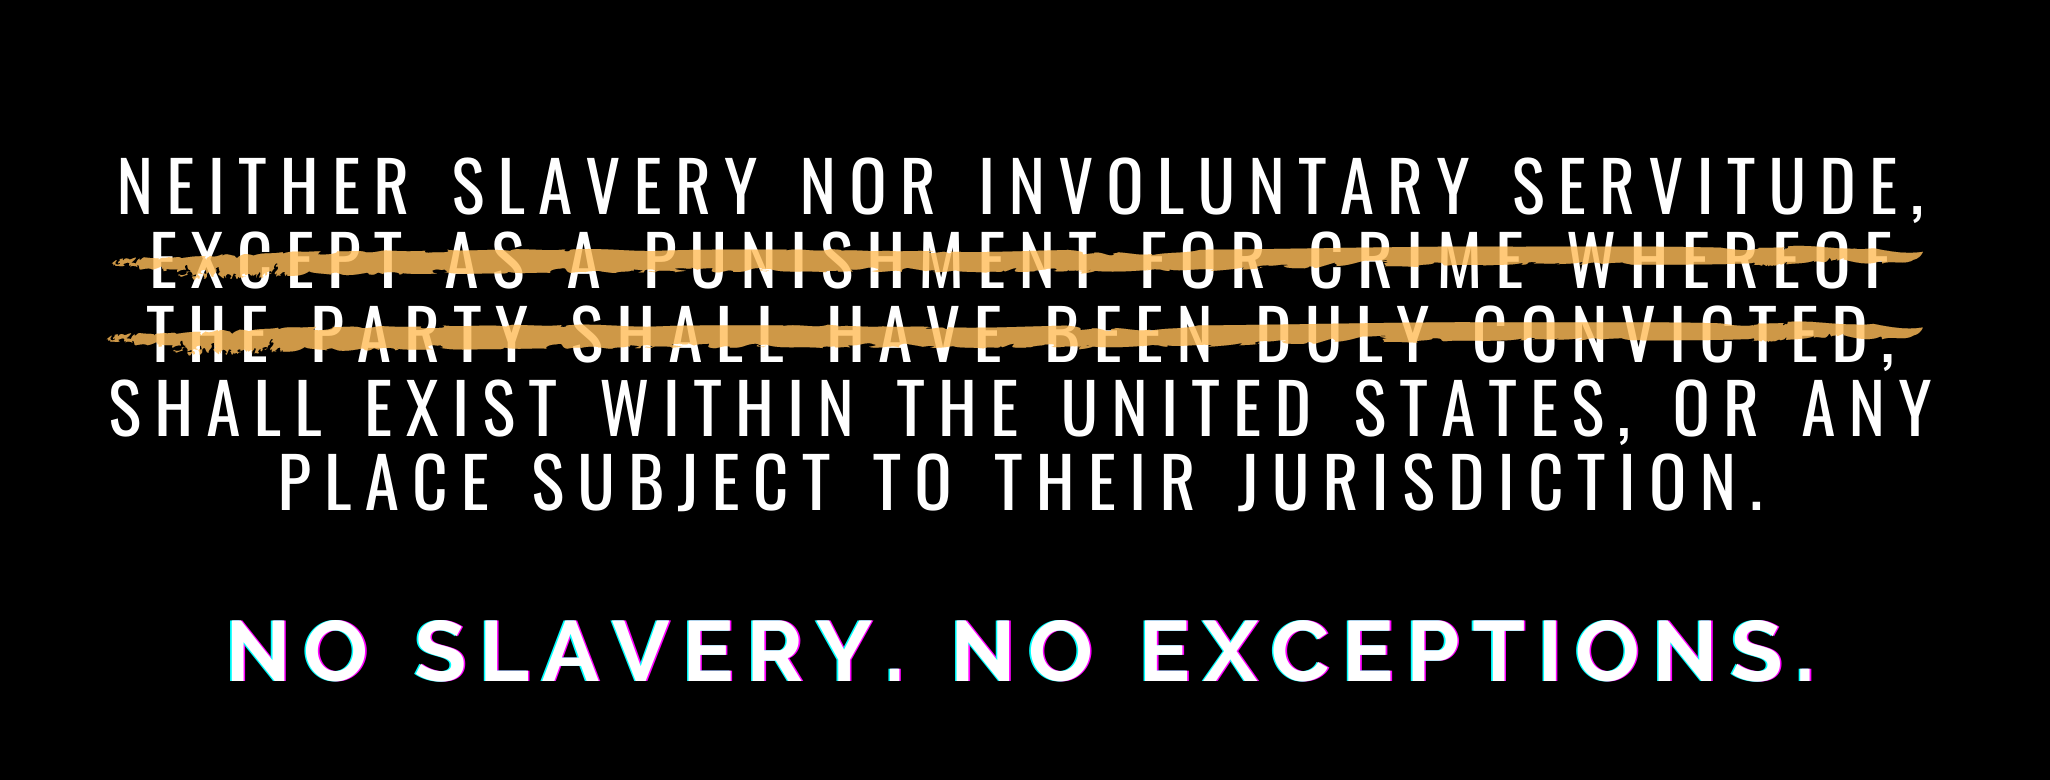 """Neither slavery nor involuntary servitude, except as a punishment for crime whereof the party shall have been duly convicted, shall exist within the United States, or any place subject to their jurisdiction."" The intermediary clause qualifying slavery as punishment for crim is crossed out. Underneath, text reads ""No slavery. No exceptions."""